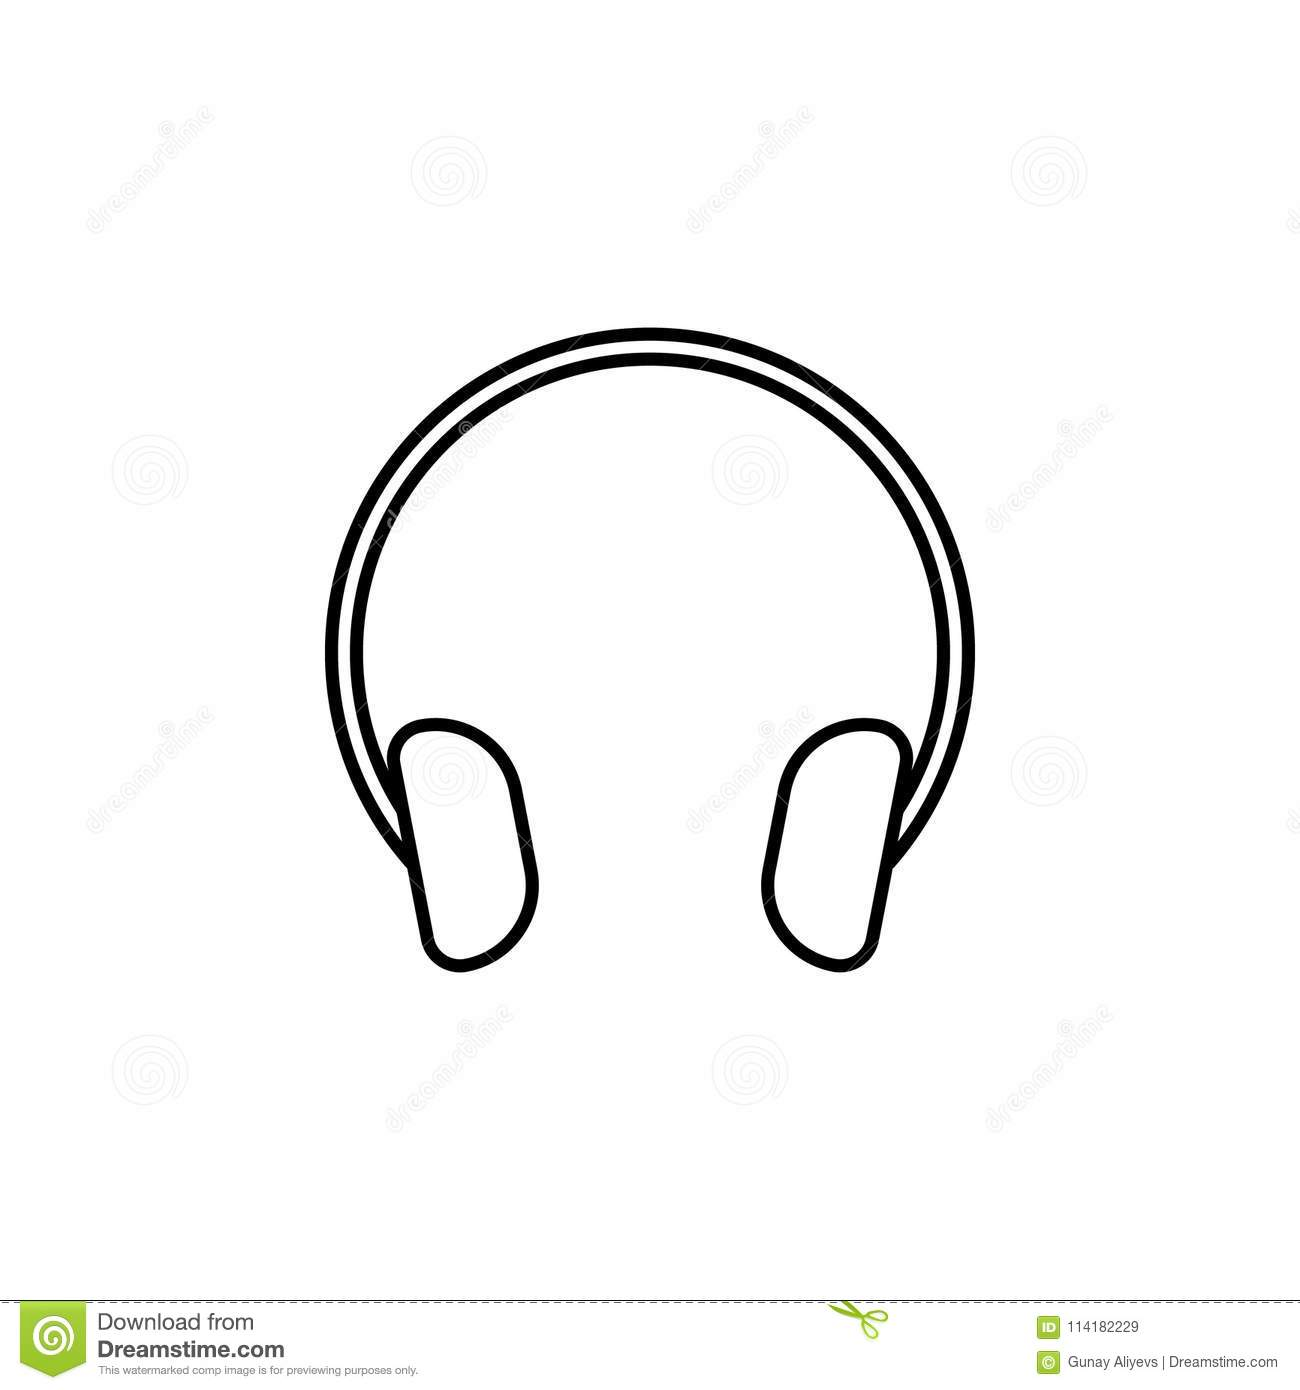 Headphones Icon  Element Of Simple Icon For Websites, Web